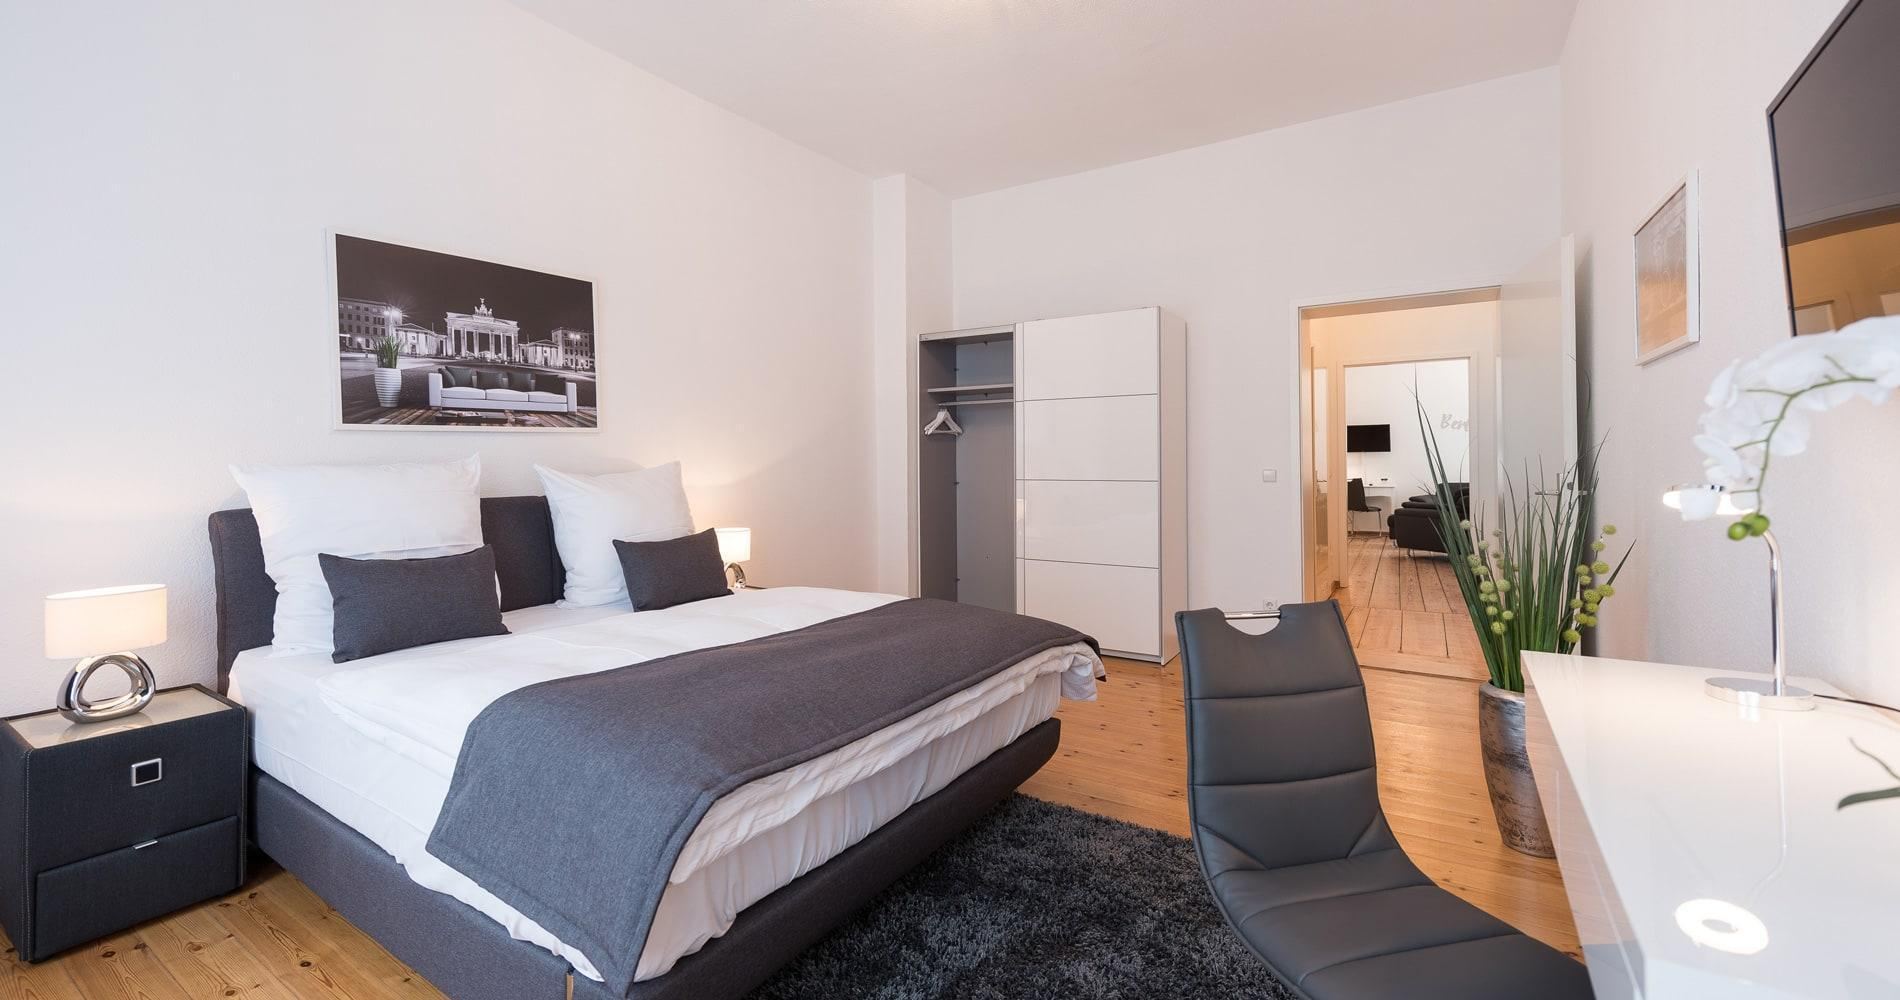 Serviced Apartment in Berlin oder Köln mieten bei Mypartment